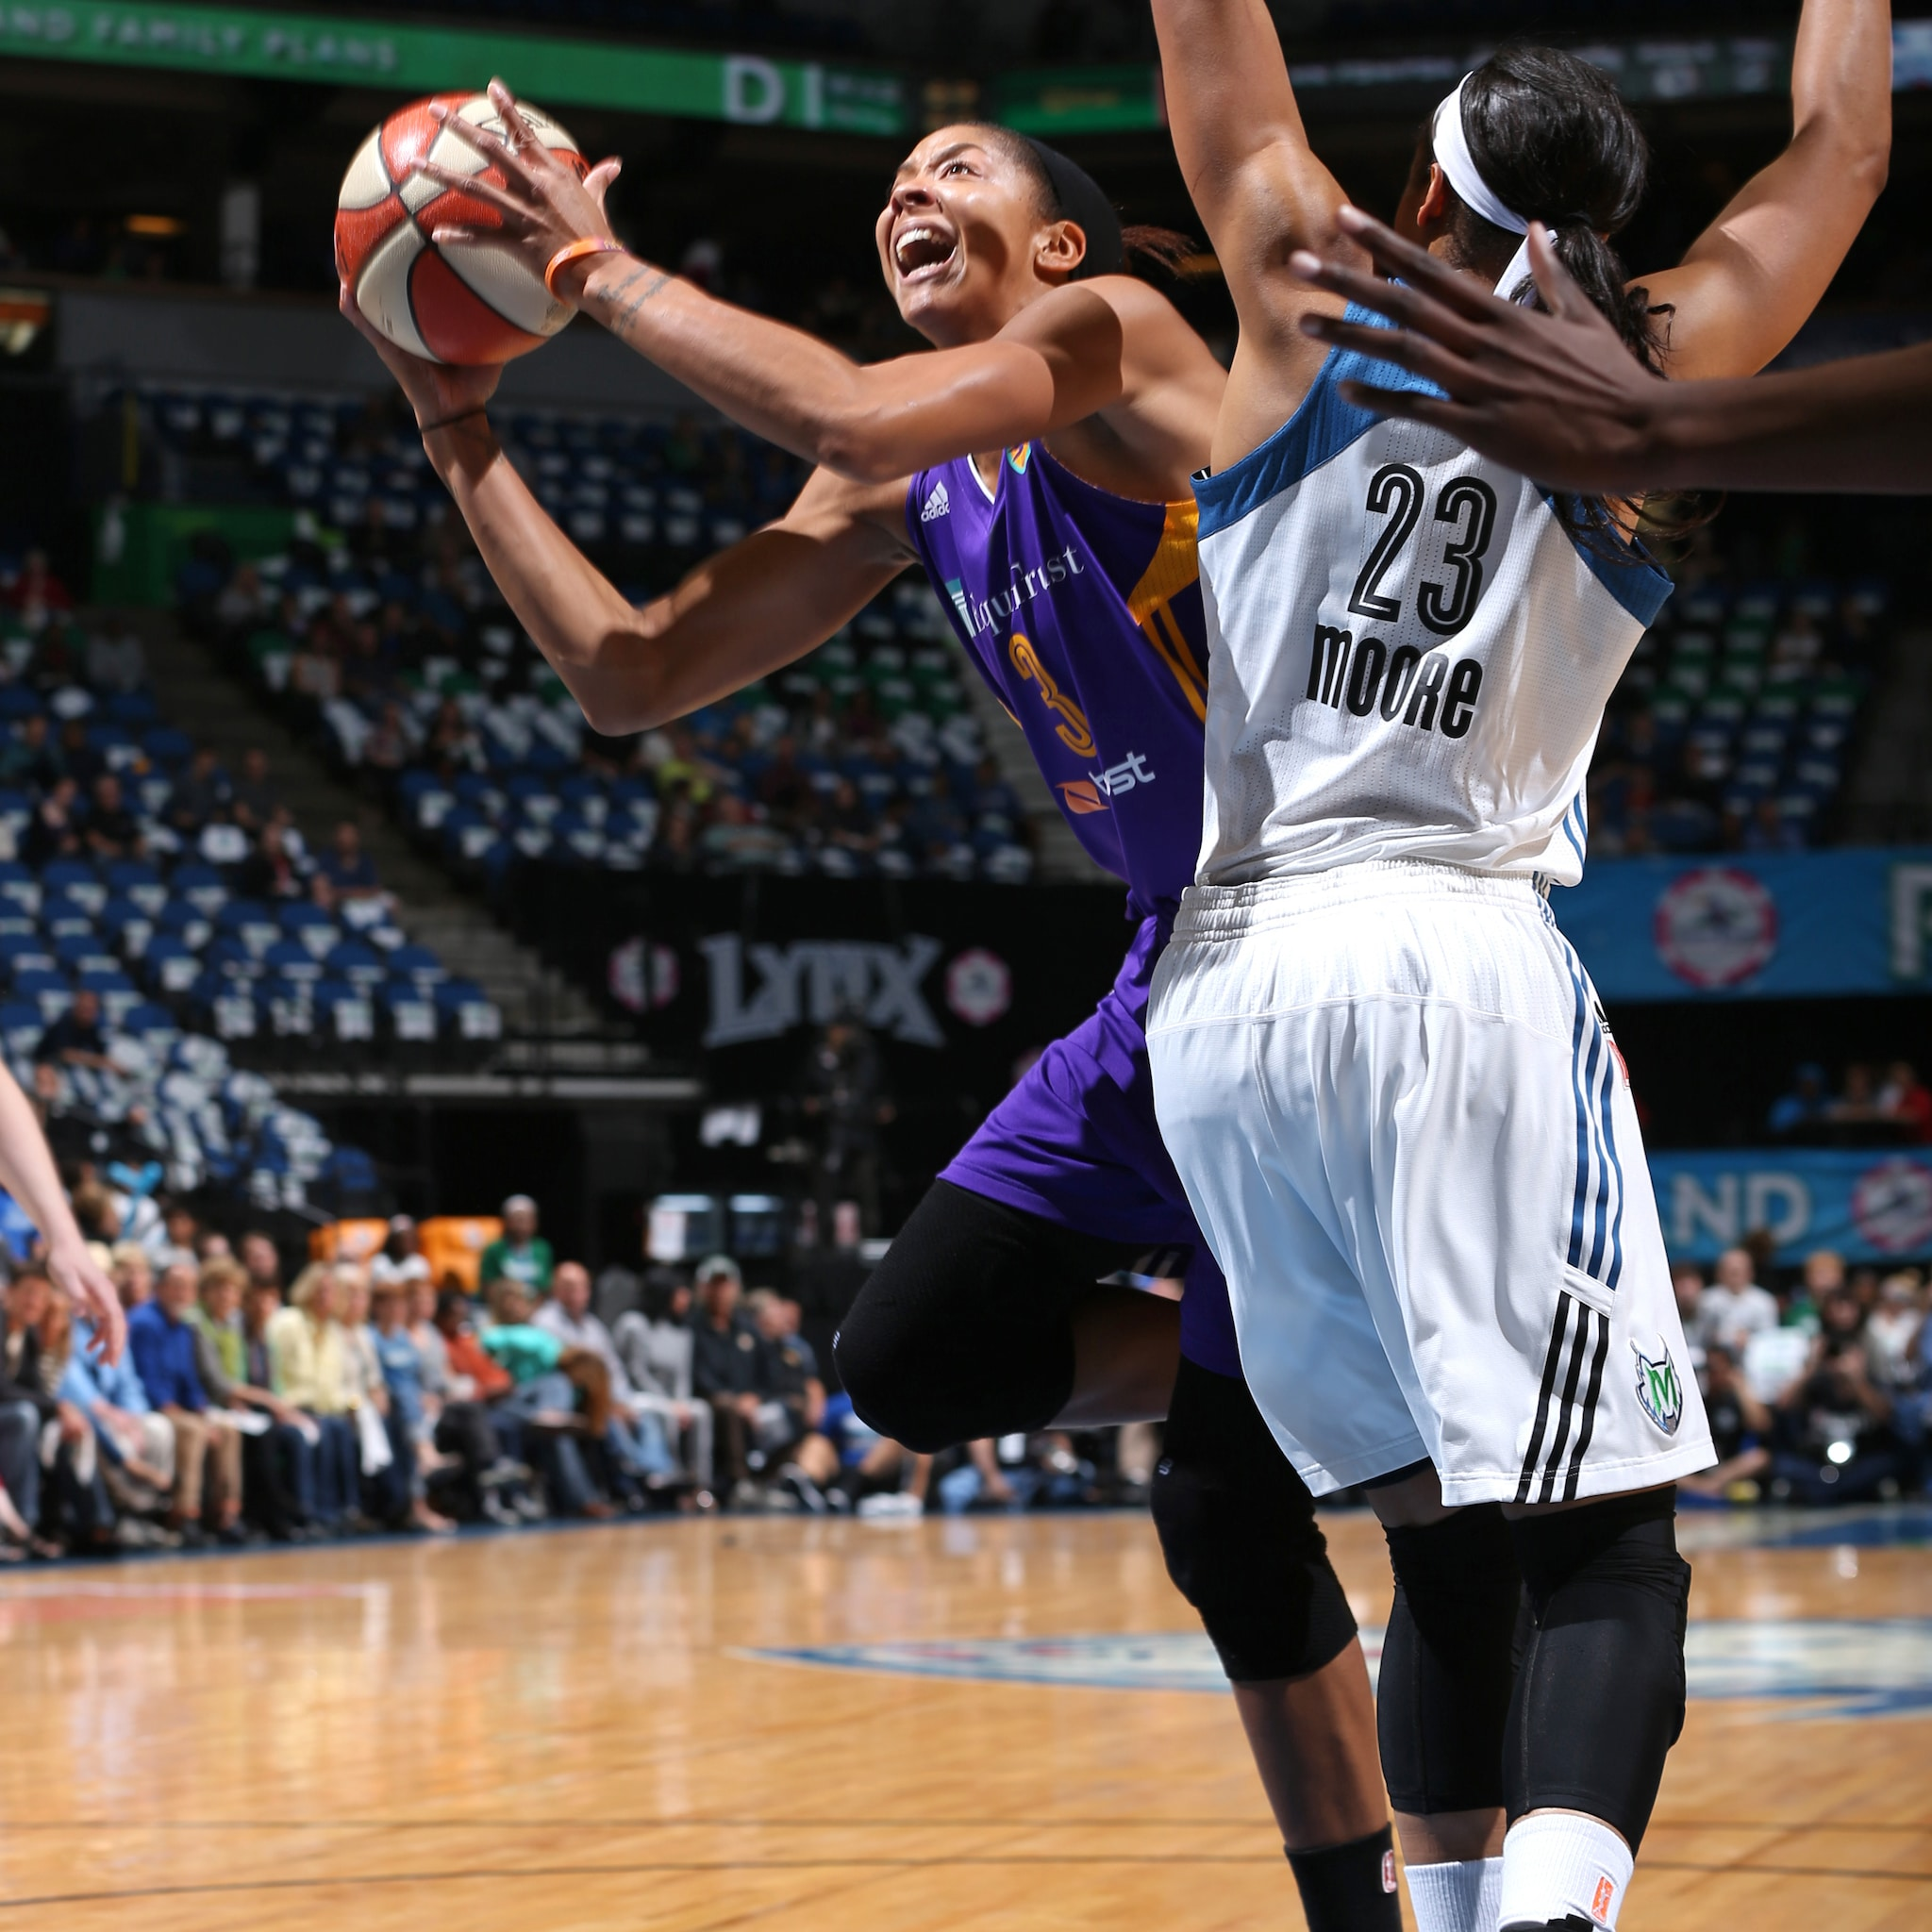 MINNEAPOLIS, MN - SEPTEMBER 18:  Candace Parker #3 of the Los Angeles Sparks drives to the basket against the Minnesota Lynx during Game 1 of the 2015 WNBA Western Conference Semifinal on September 18, 2015 at Target Center in Minneapolis, Minnesota.  NOTE TO USER: User expressly acknowledges and agrees that, by downloading and or using this Photograph, user is consenting to the terms and conditions of the Getty Images License Agreement. Mandatory Copyright Notice: Copyright 2015 NBAE (Photo by David Sherman/NBAE via Getty Images)